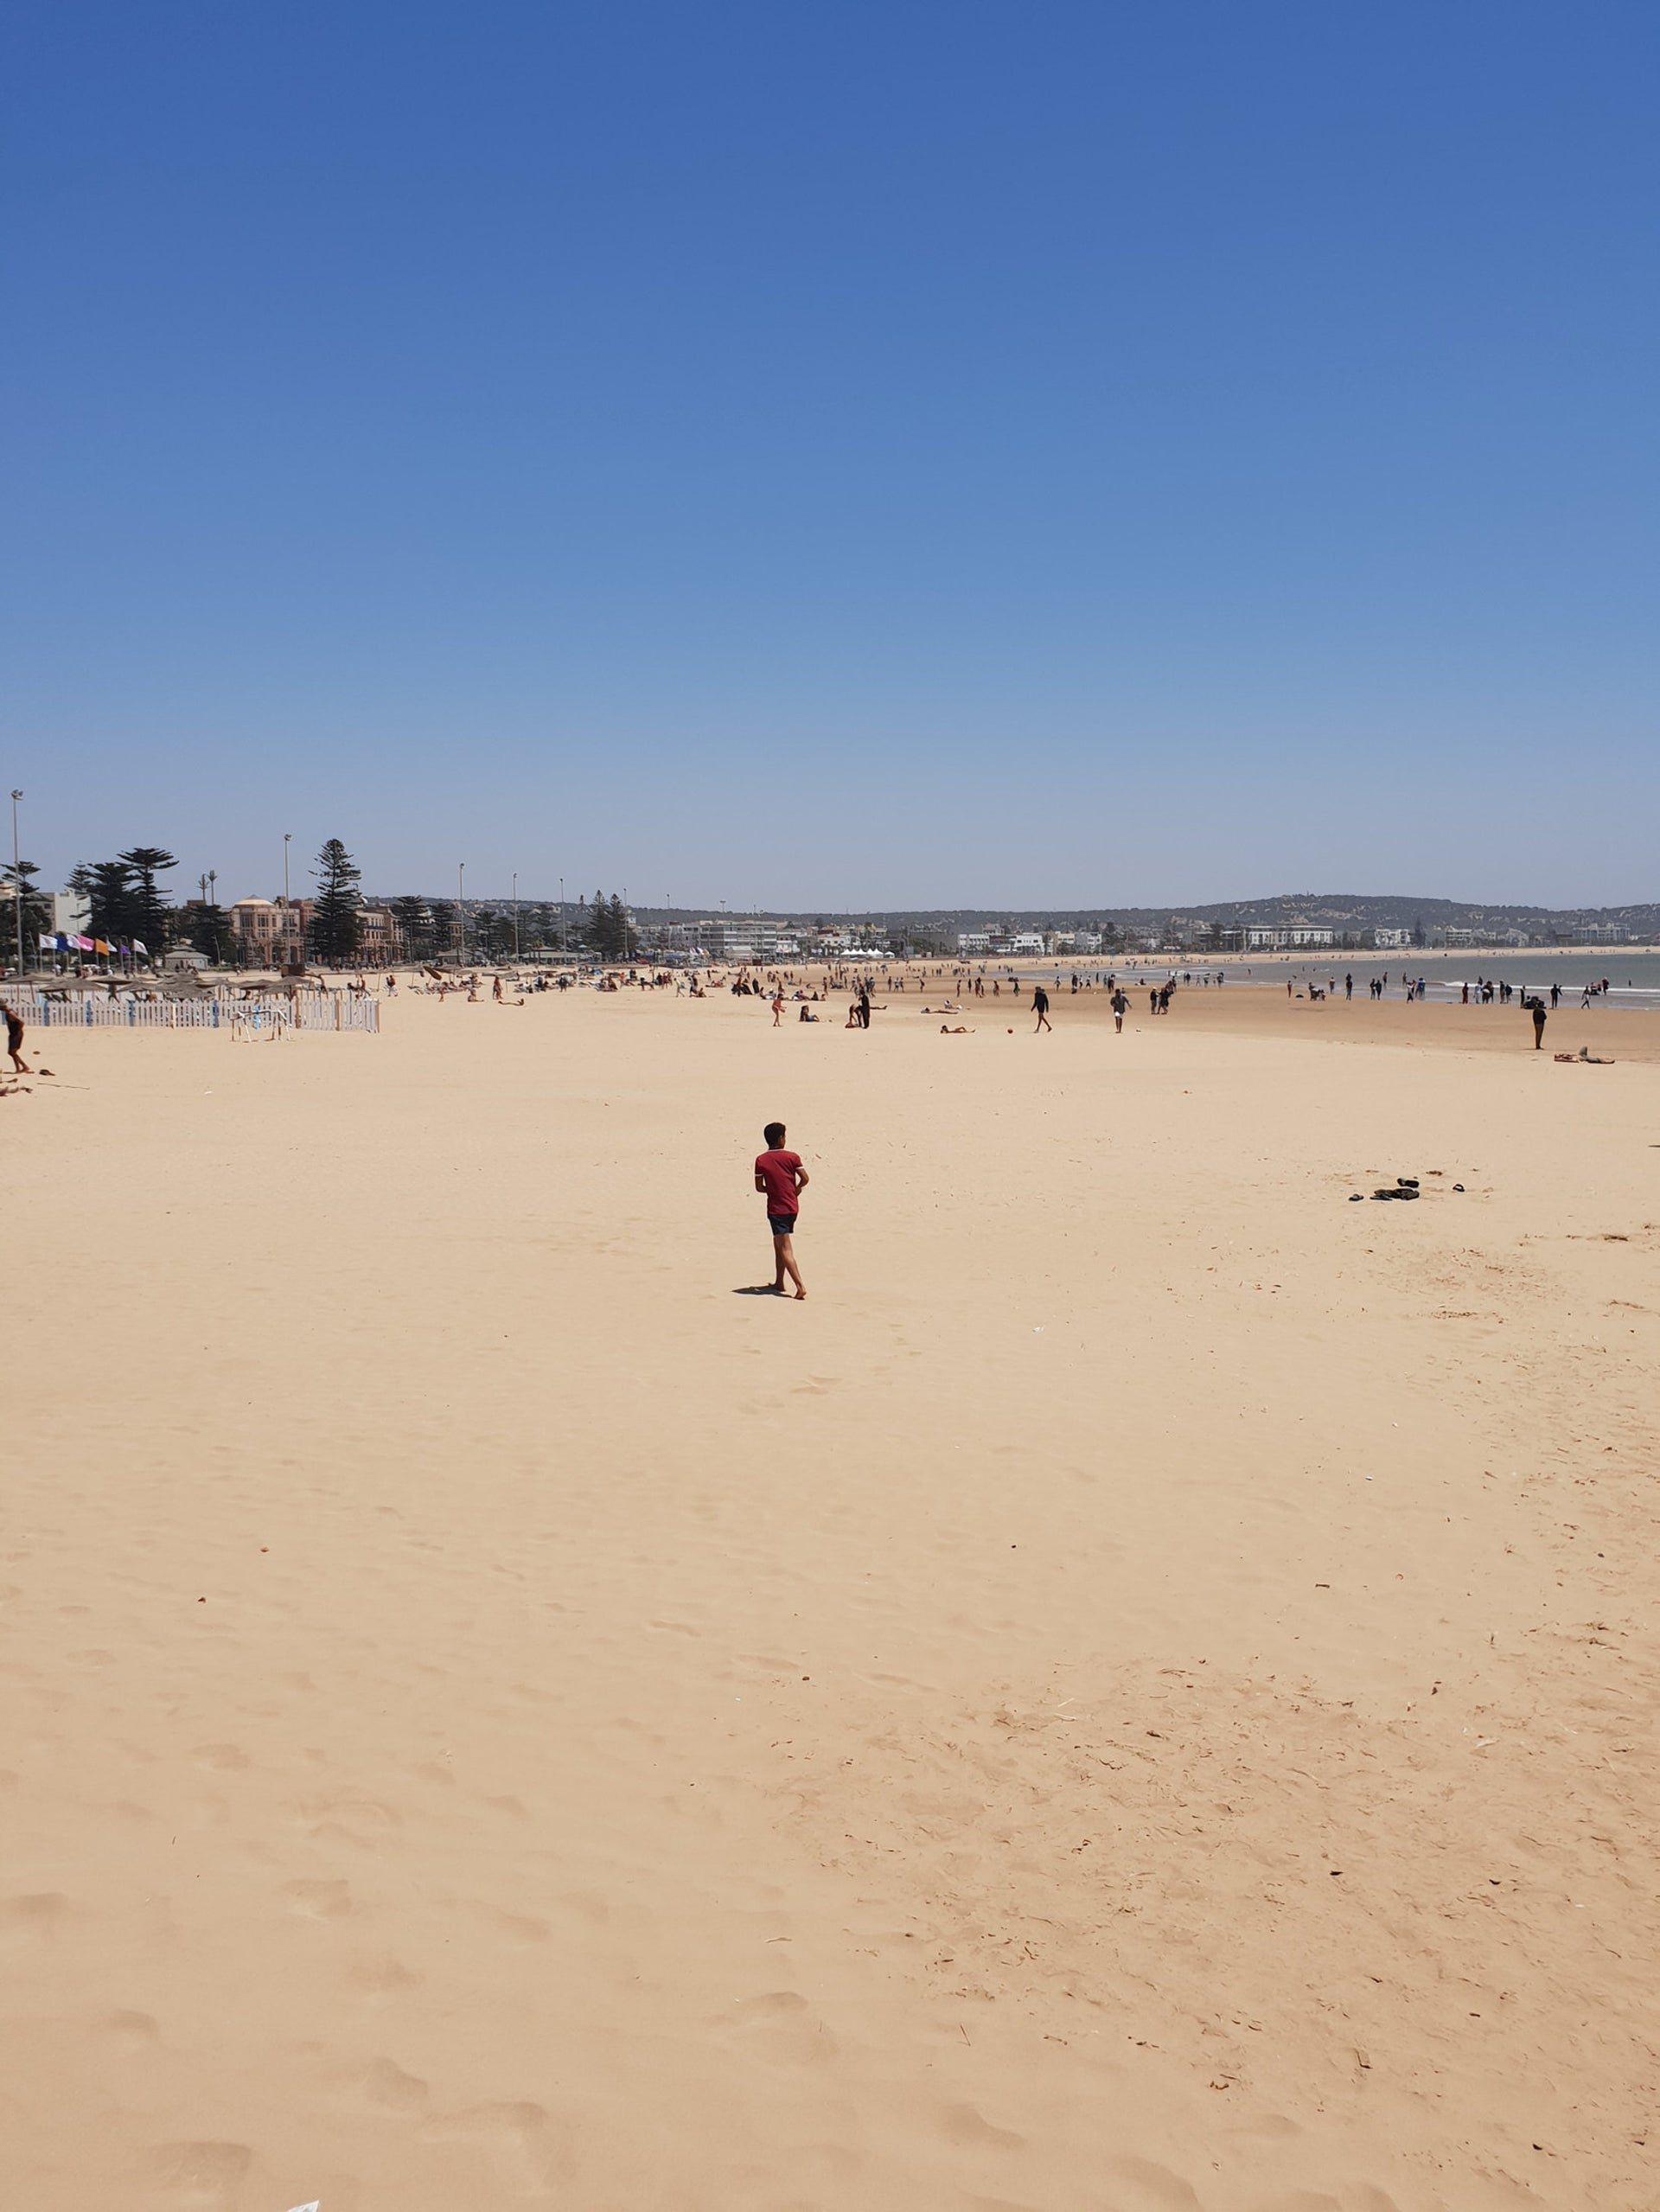 A kid is running on the beach in Essaouira.